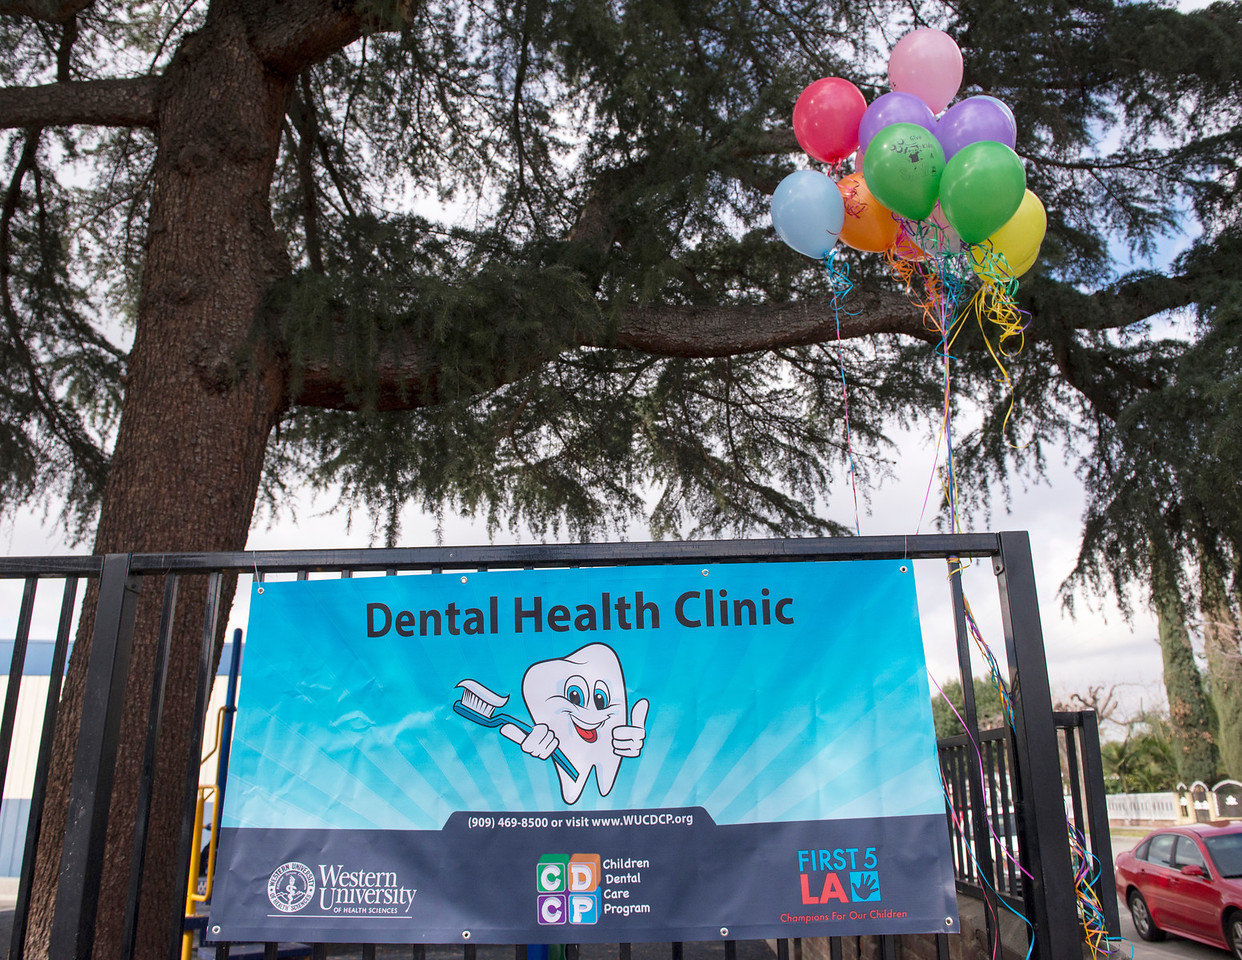 Western University of Health Sciences partnered with the Center for Oral Health and the American Dental Association to provide free dental exams to children 17 and younger for Give Kids A Smile Feb. 4, 2014 at Mendoza Elementary School in Pomona. WesternU College of Dental Medicine students and faculty provided free dental exams, cleanings, fluoride treatments and sealants. Give Kids A Smile is an annual one-day volunteer initiative to provide free educational and preventative oral health services to children. (Jeff Malet, WesternU)